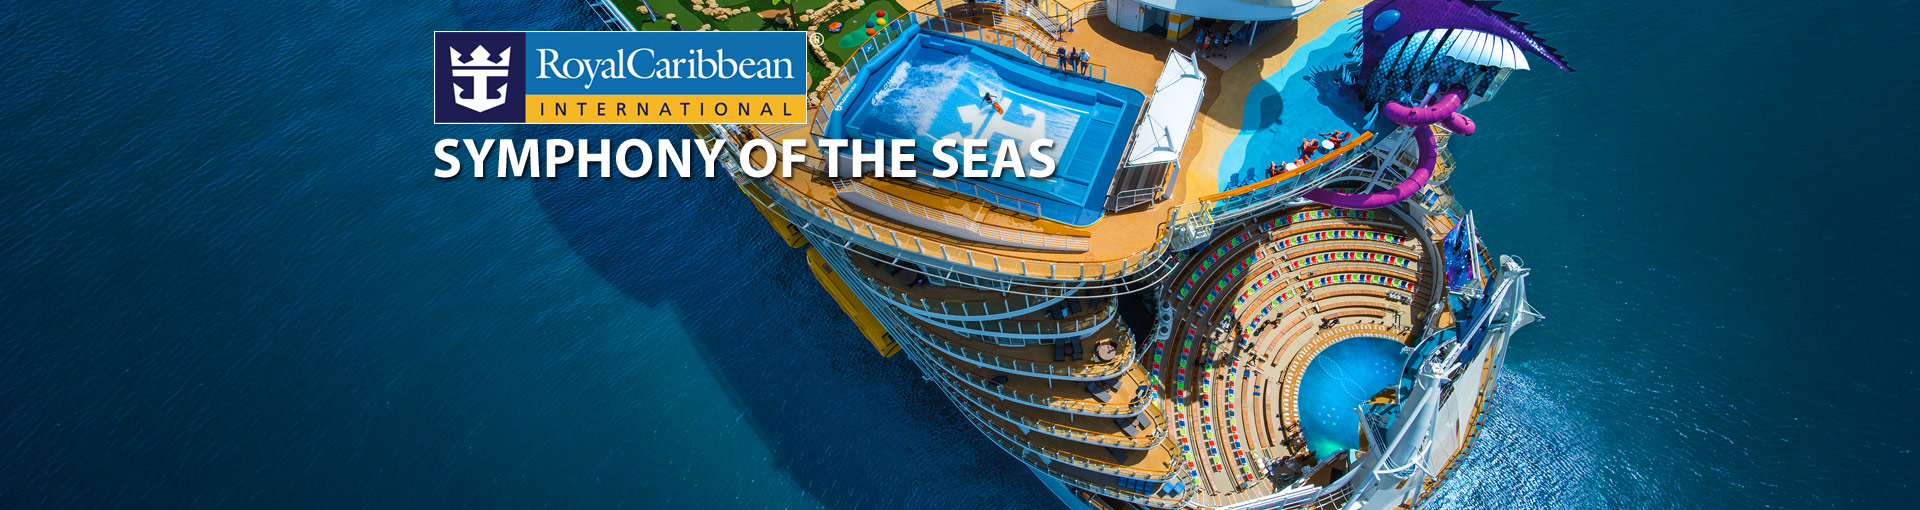 Royal Caribbean's Symphony of the Seas Cruise Ship, 2019 and